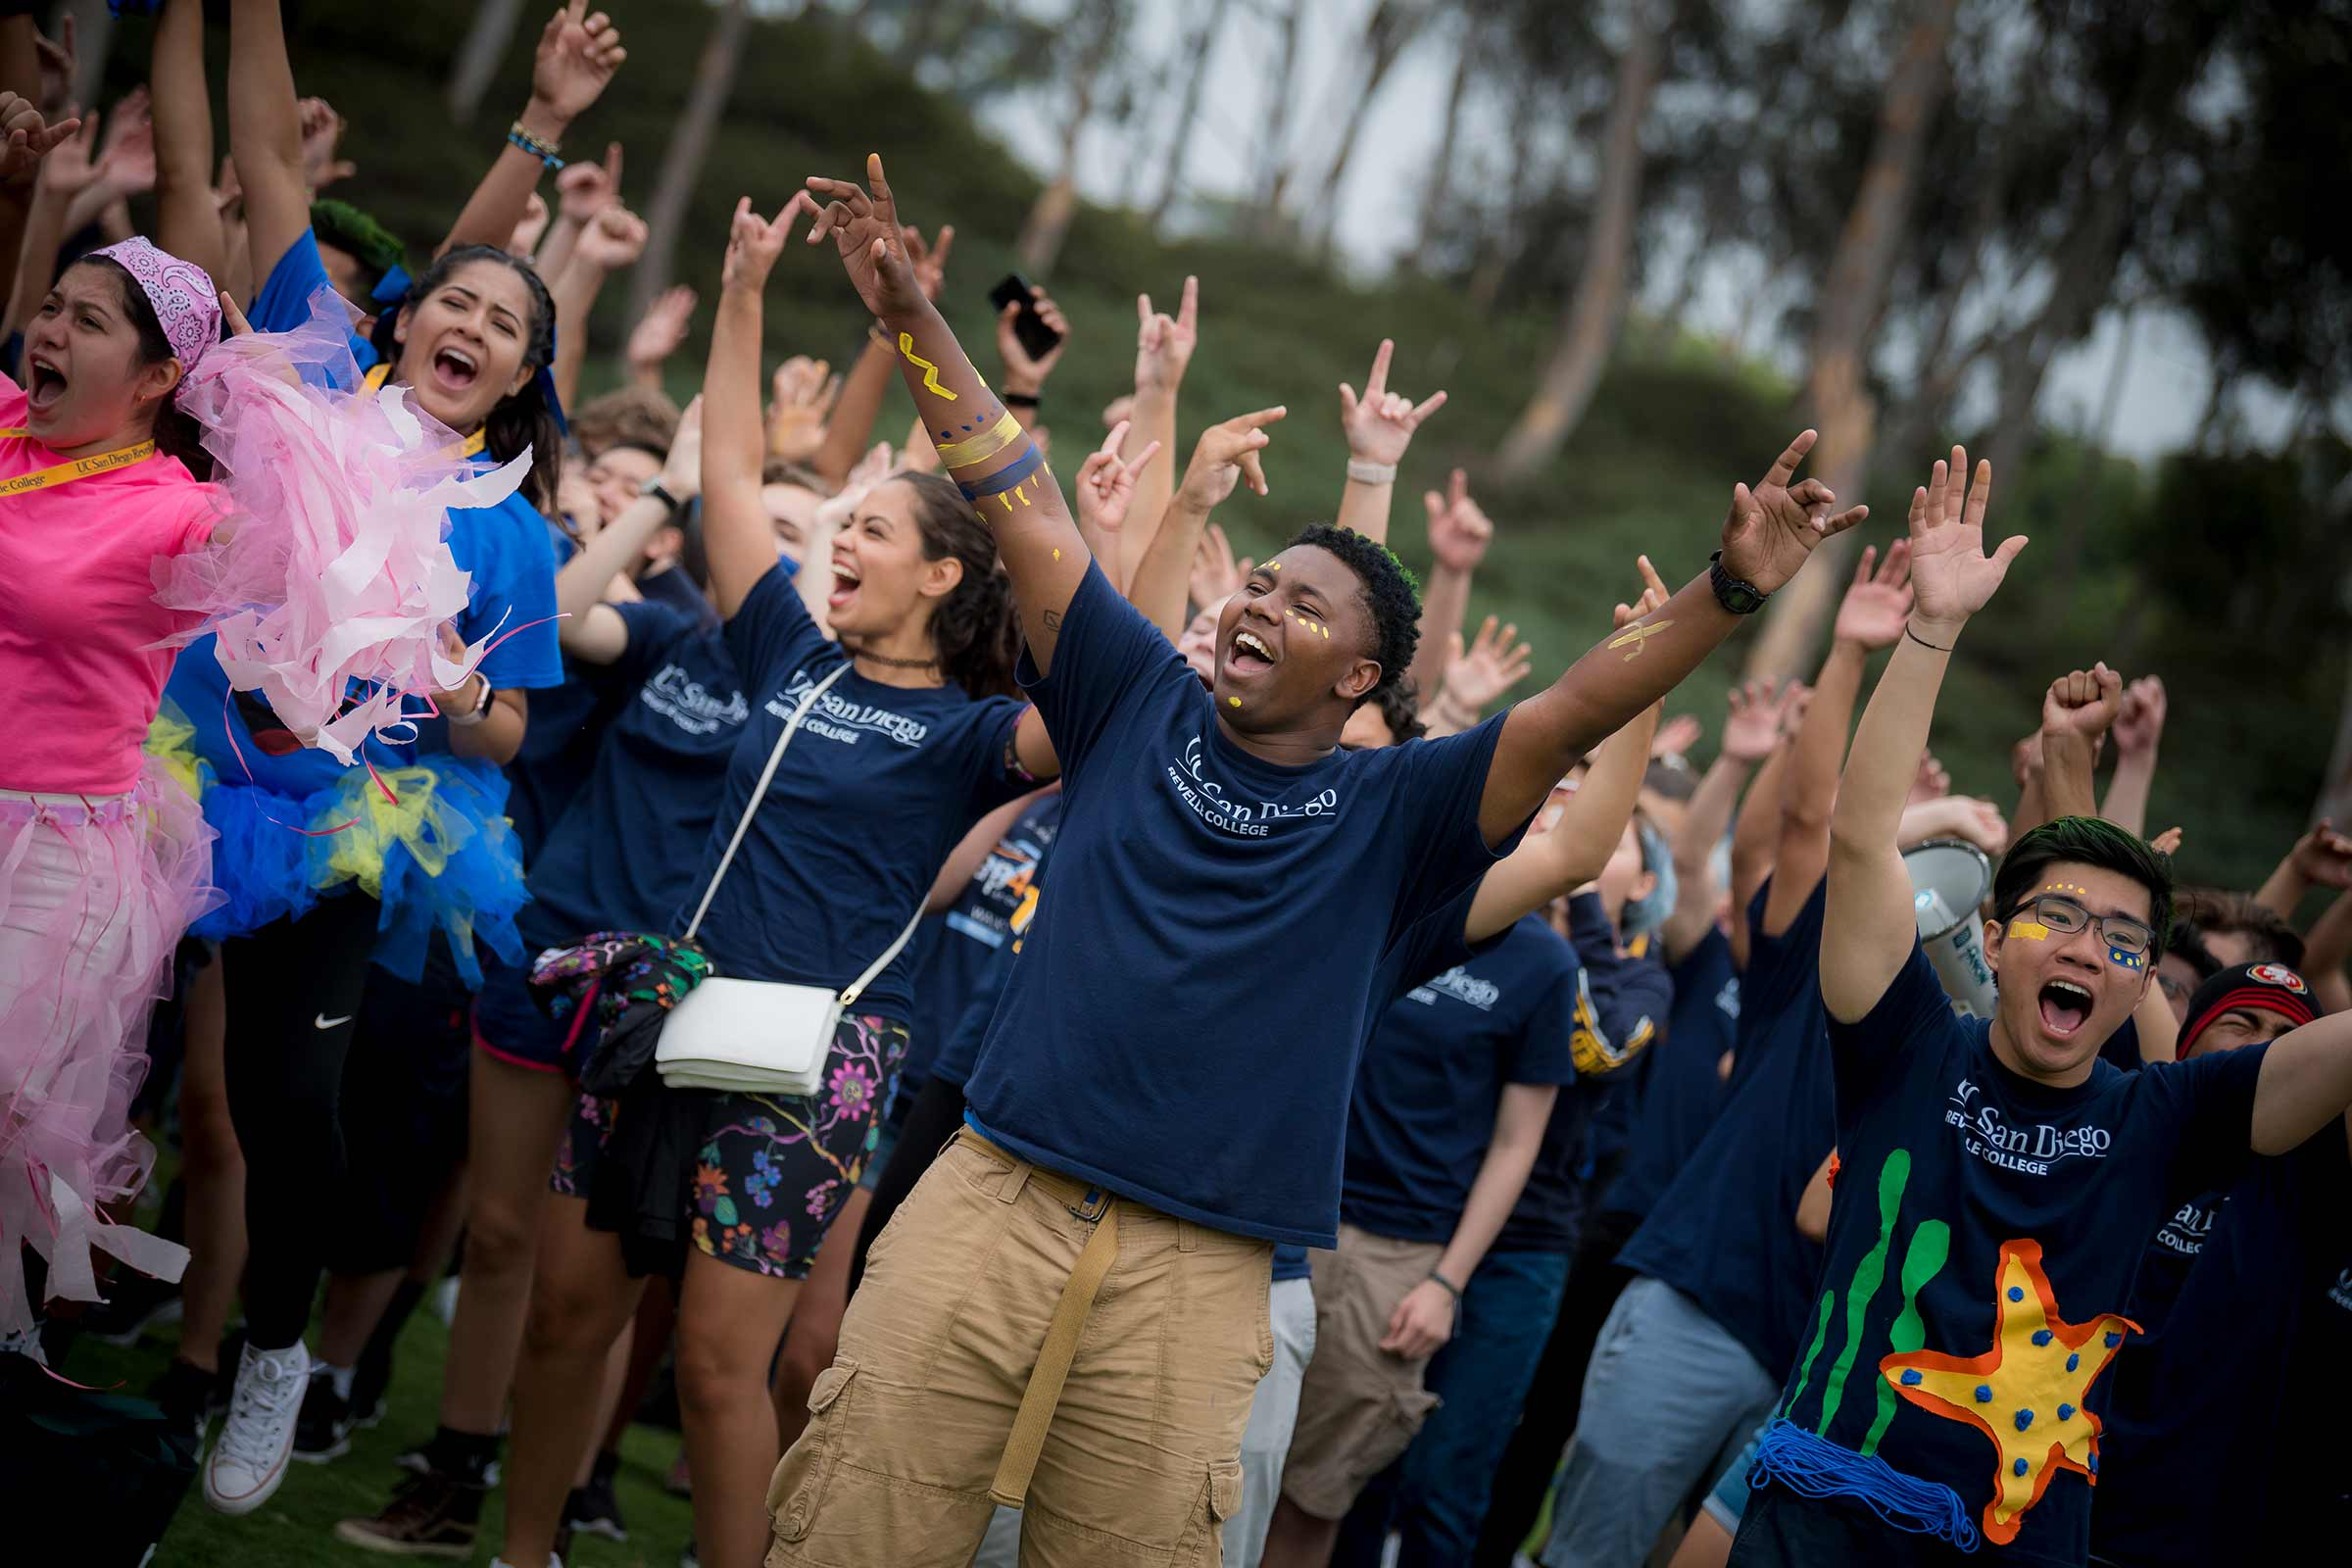 UC San Diego students celebrating back to school